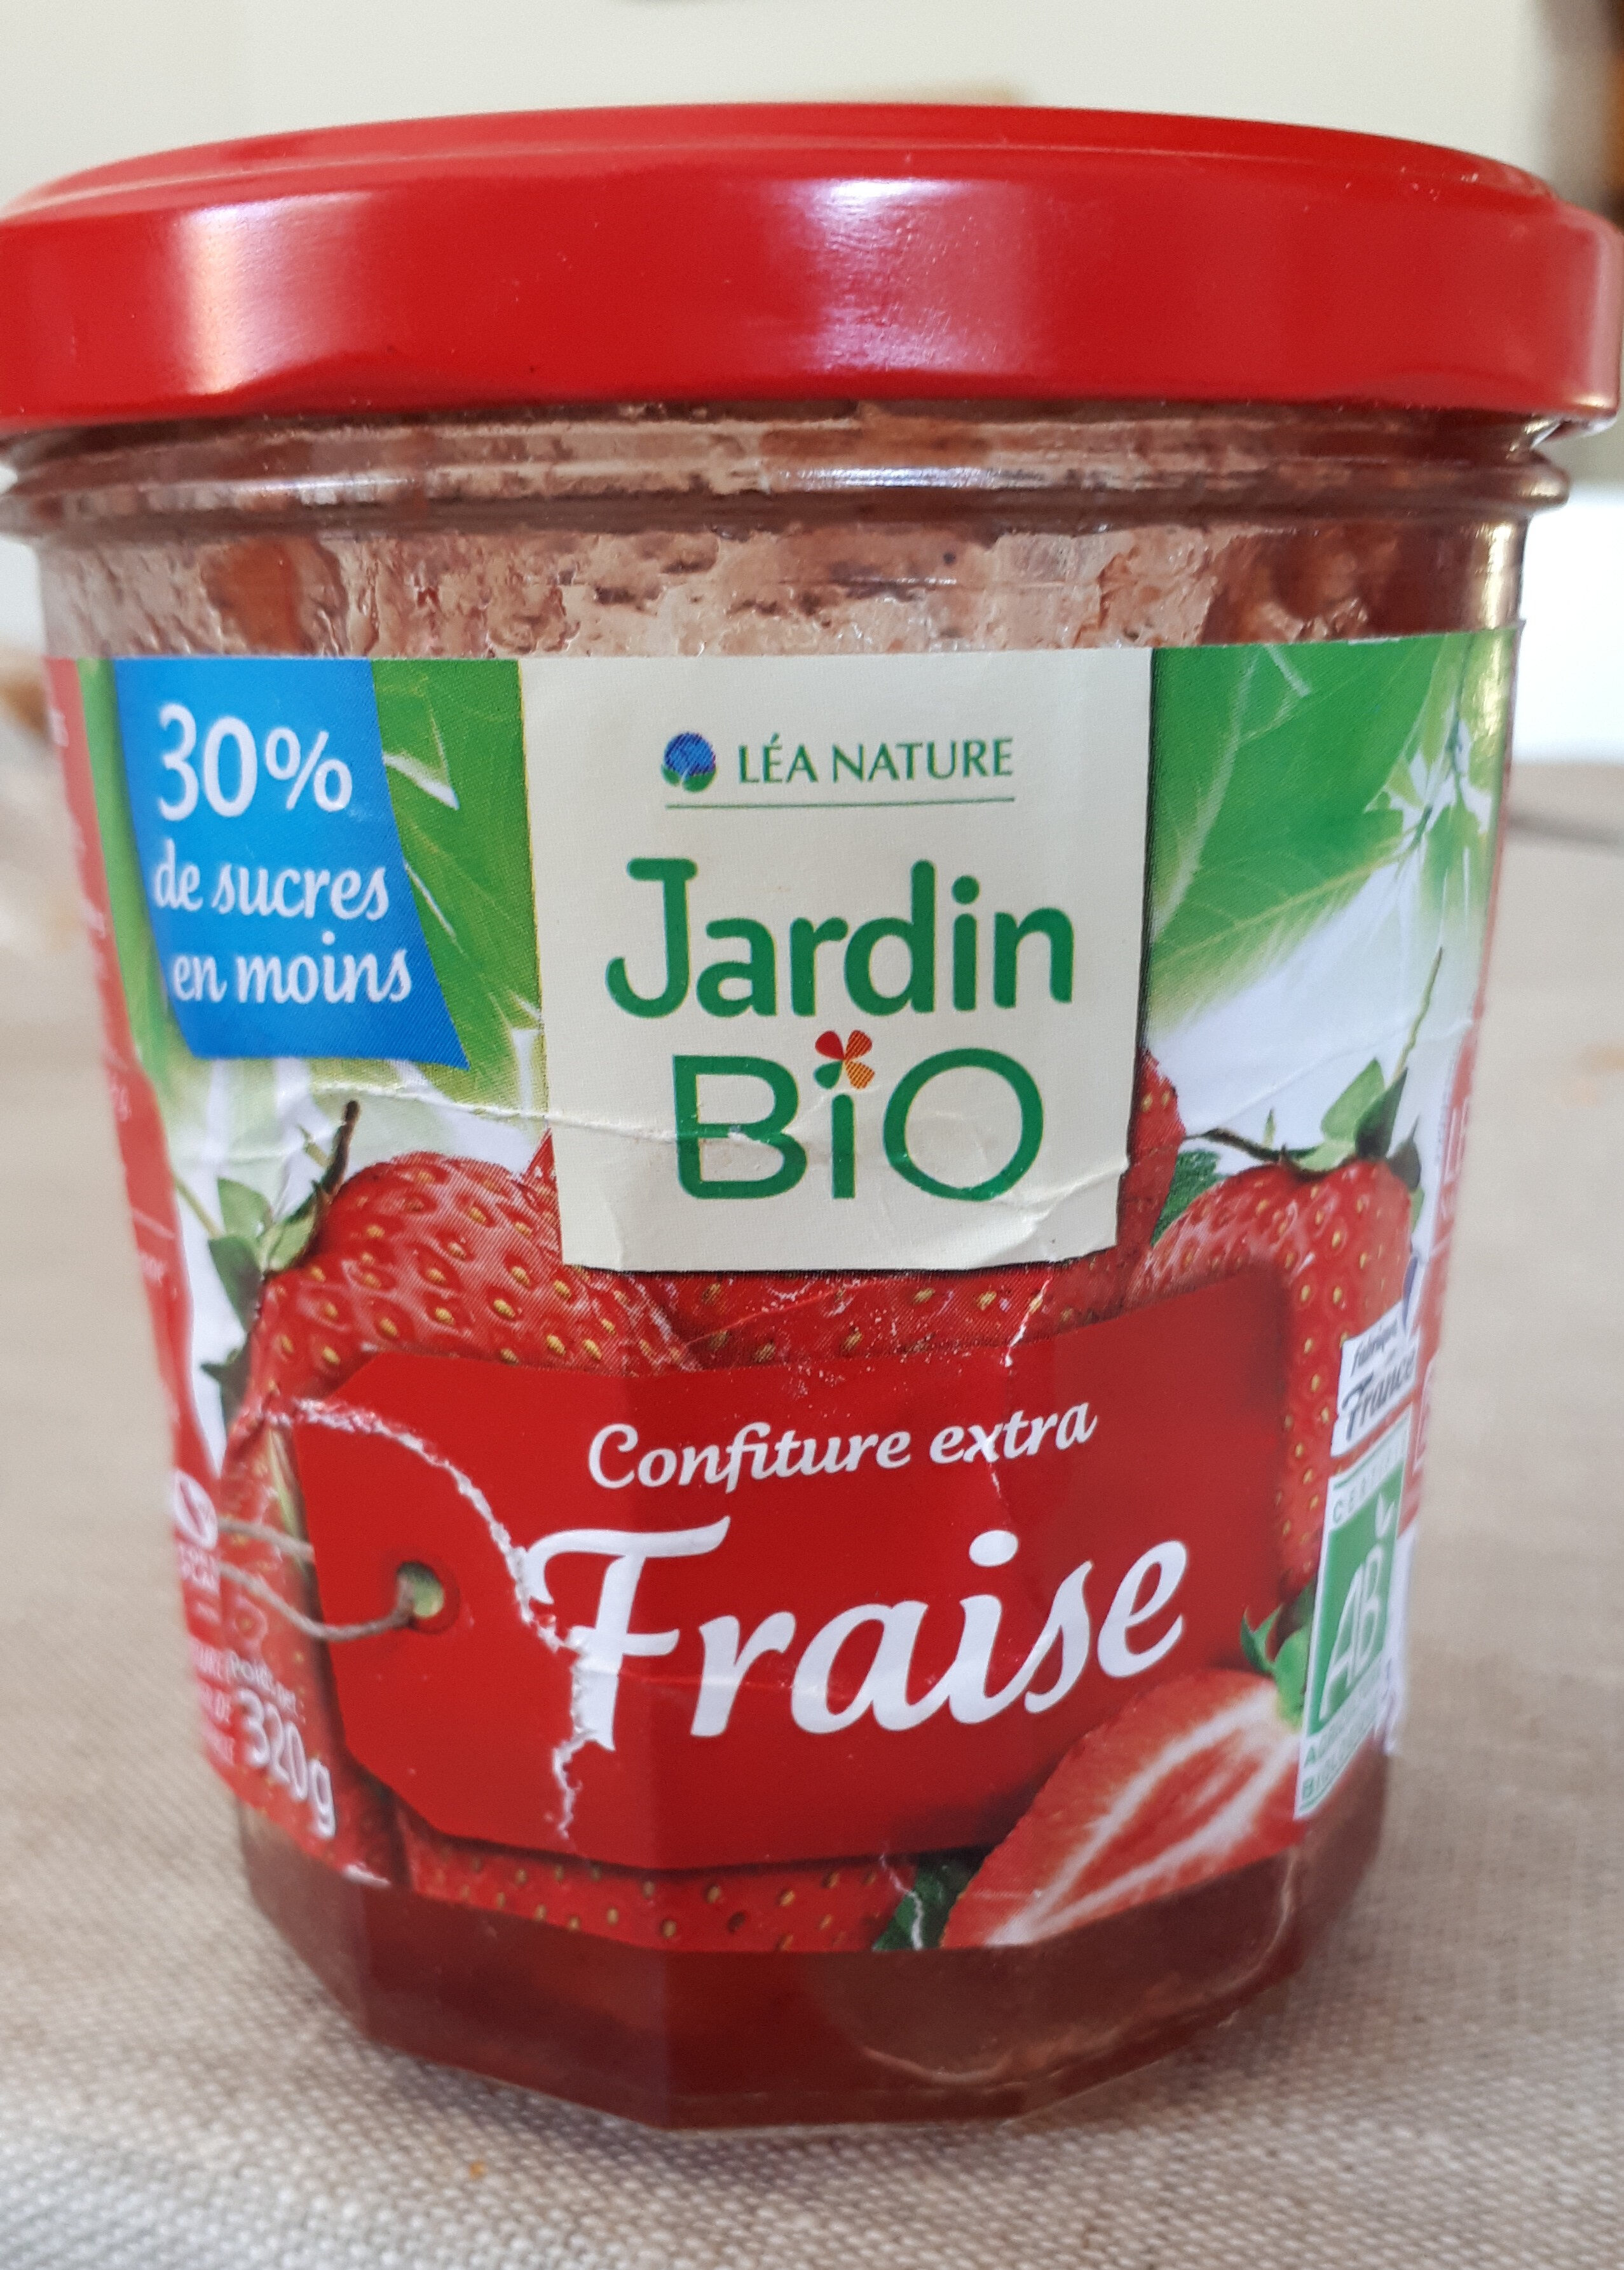 confiture extra fraise - Product